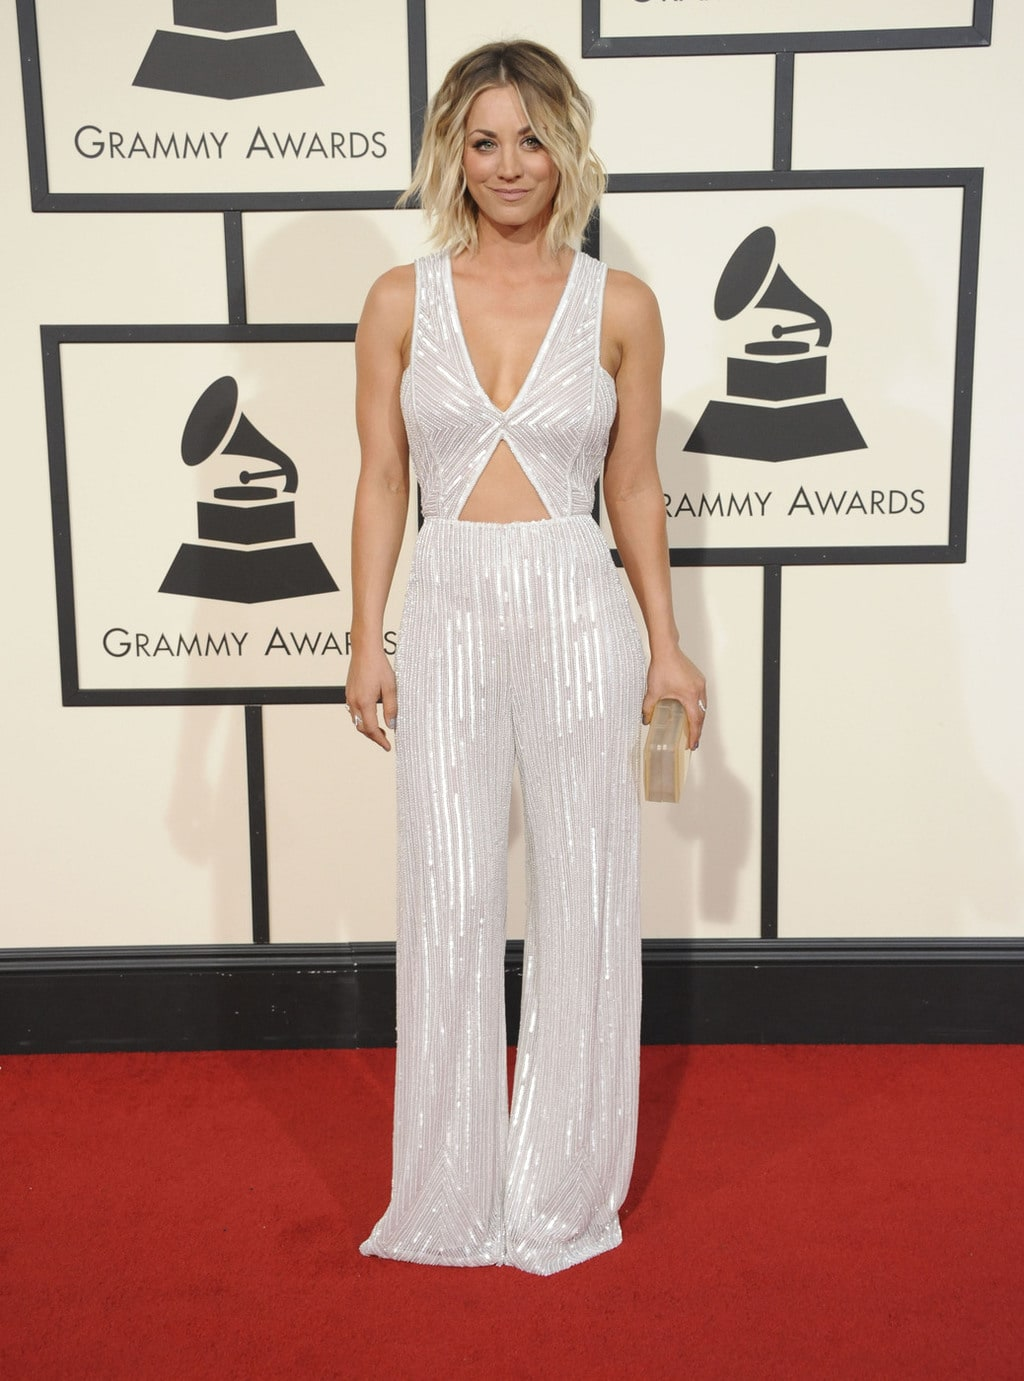 Kaley Cuoco in Naeem Khan at the 2016 Grammy Awards